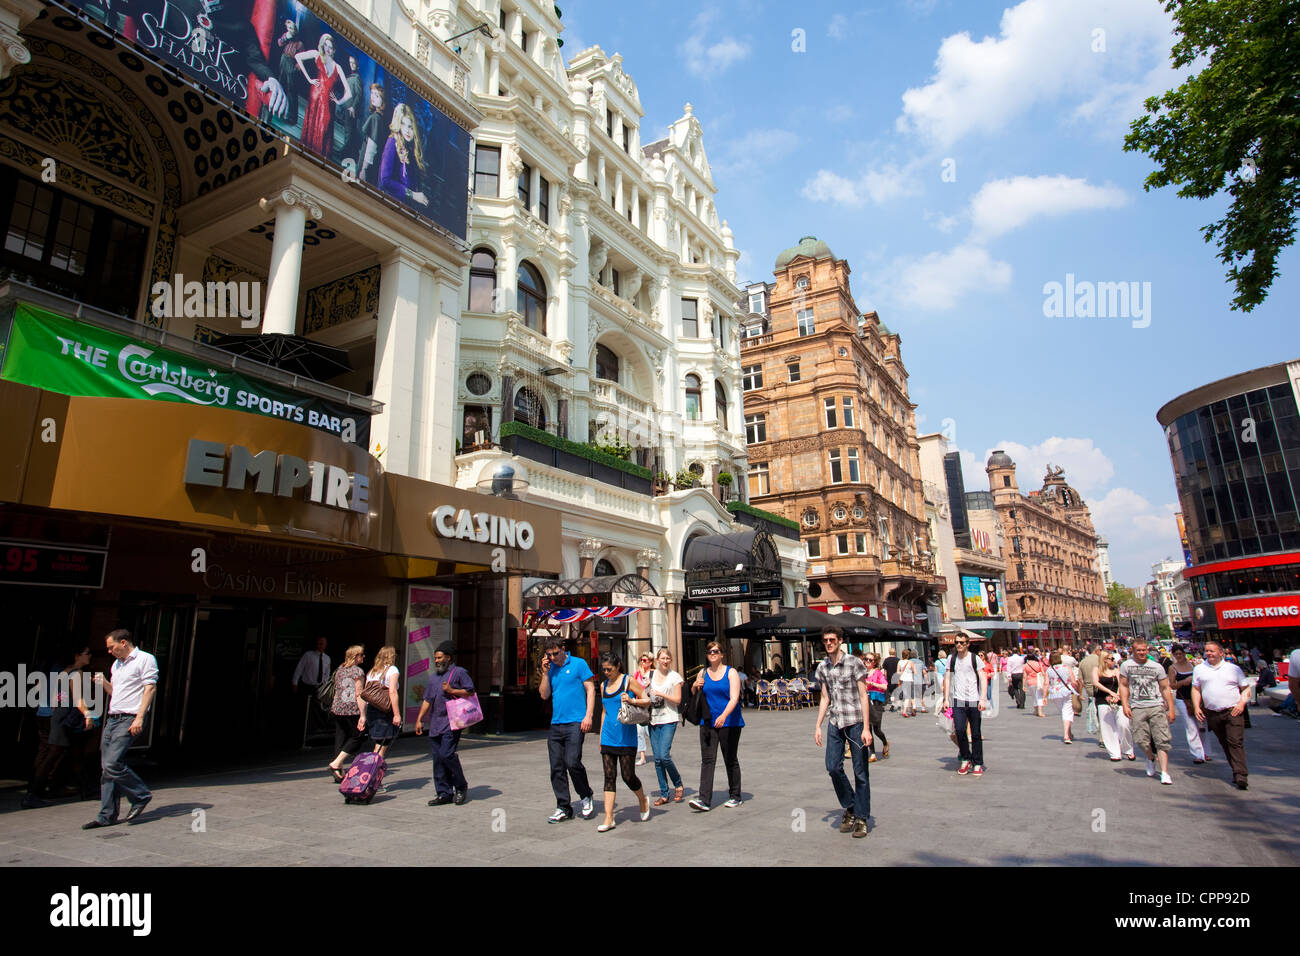 Leicester Square, West End, London, United Kingdom - Stock Image